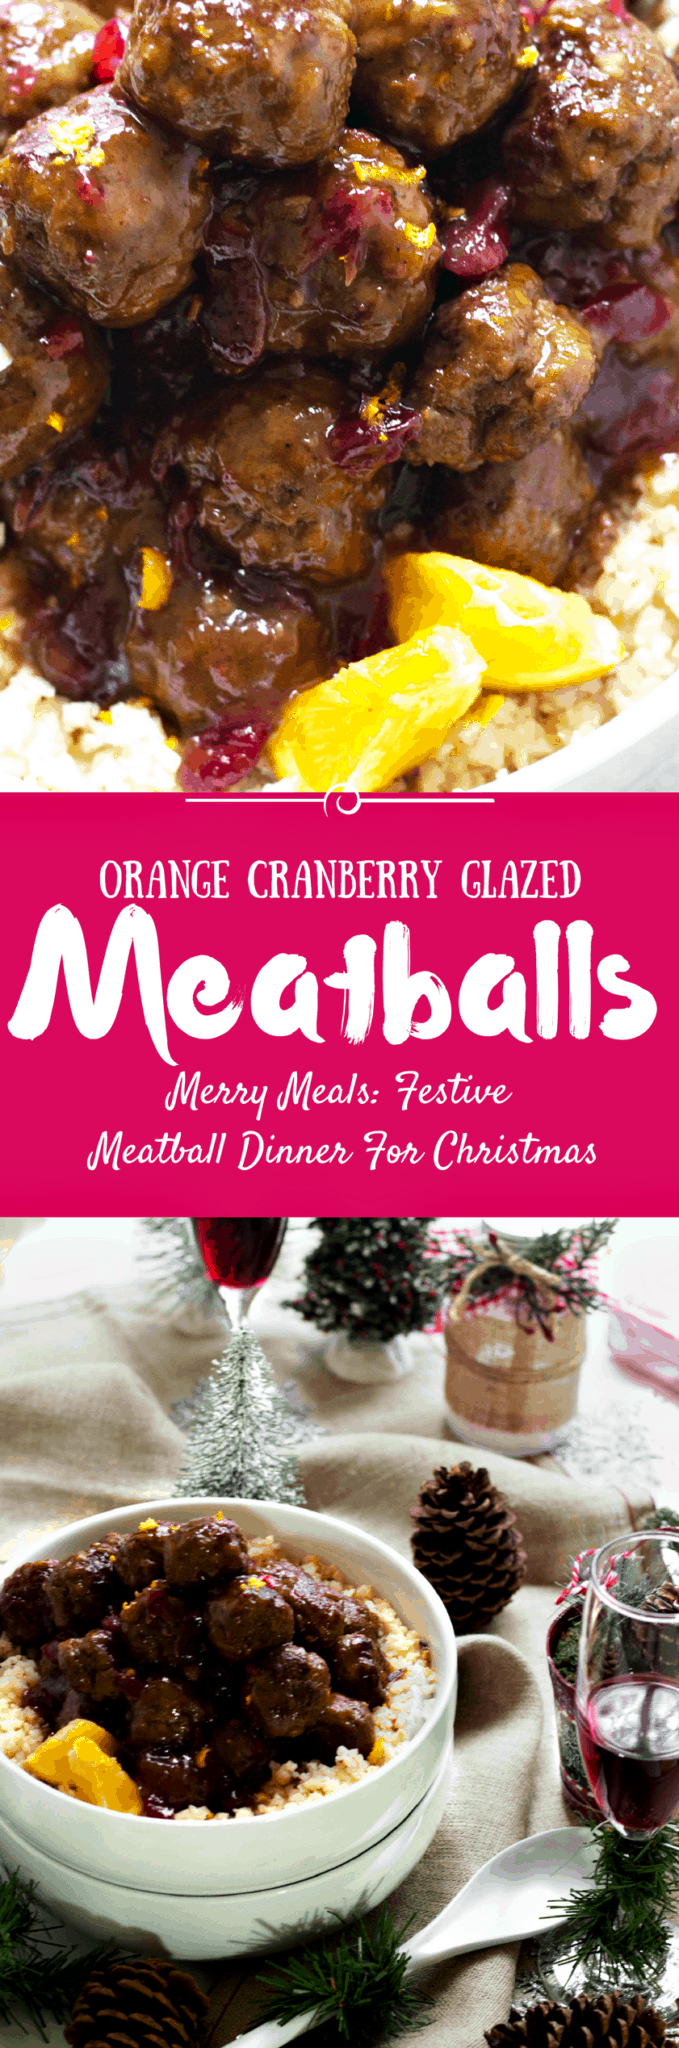 merry-meals-festive-glazed-meatball-dinner-for-christmas-collectivebias